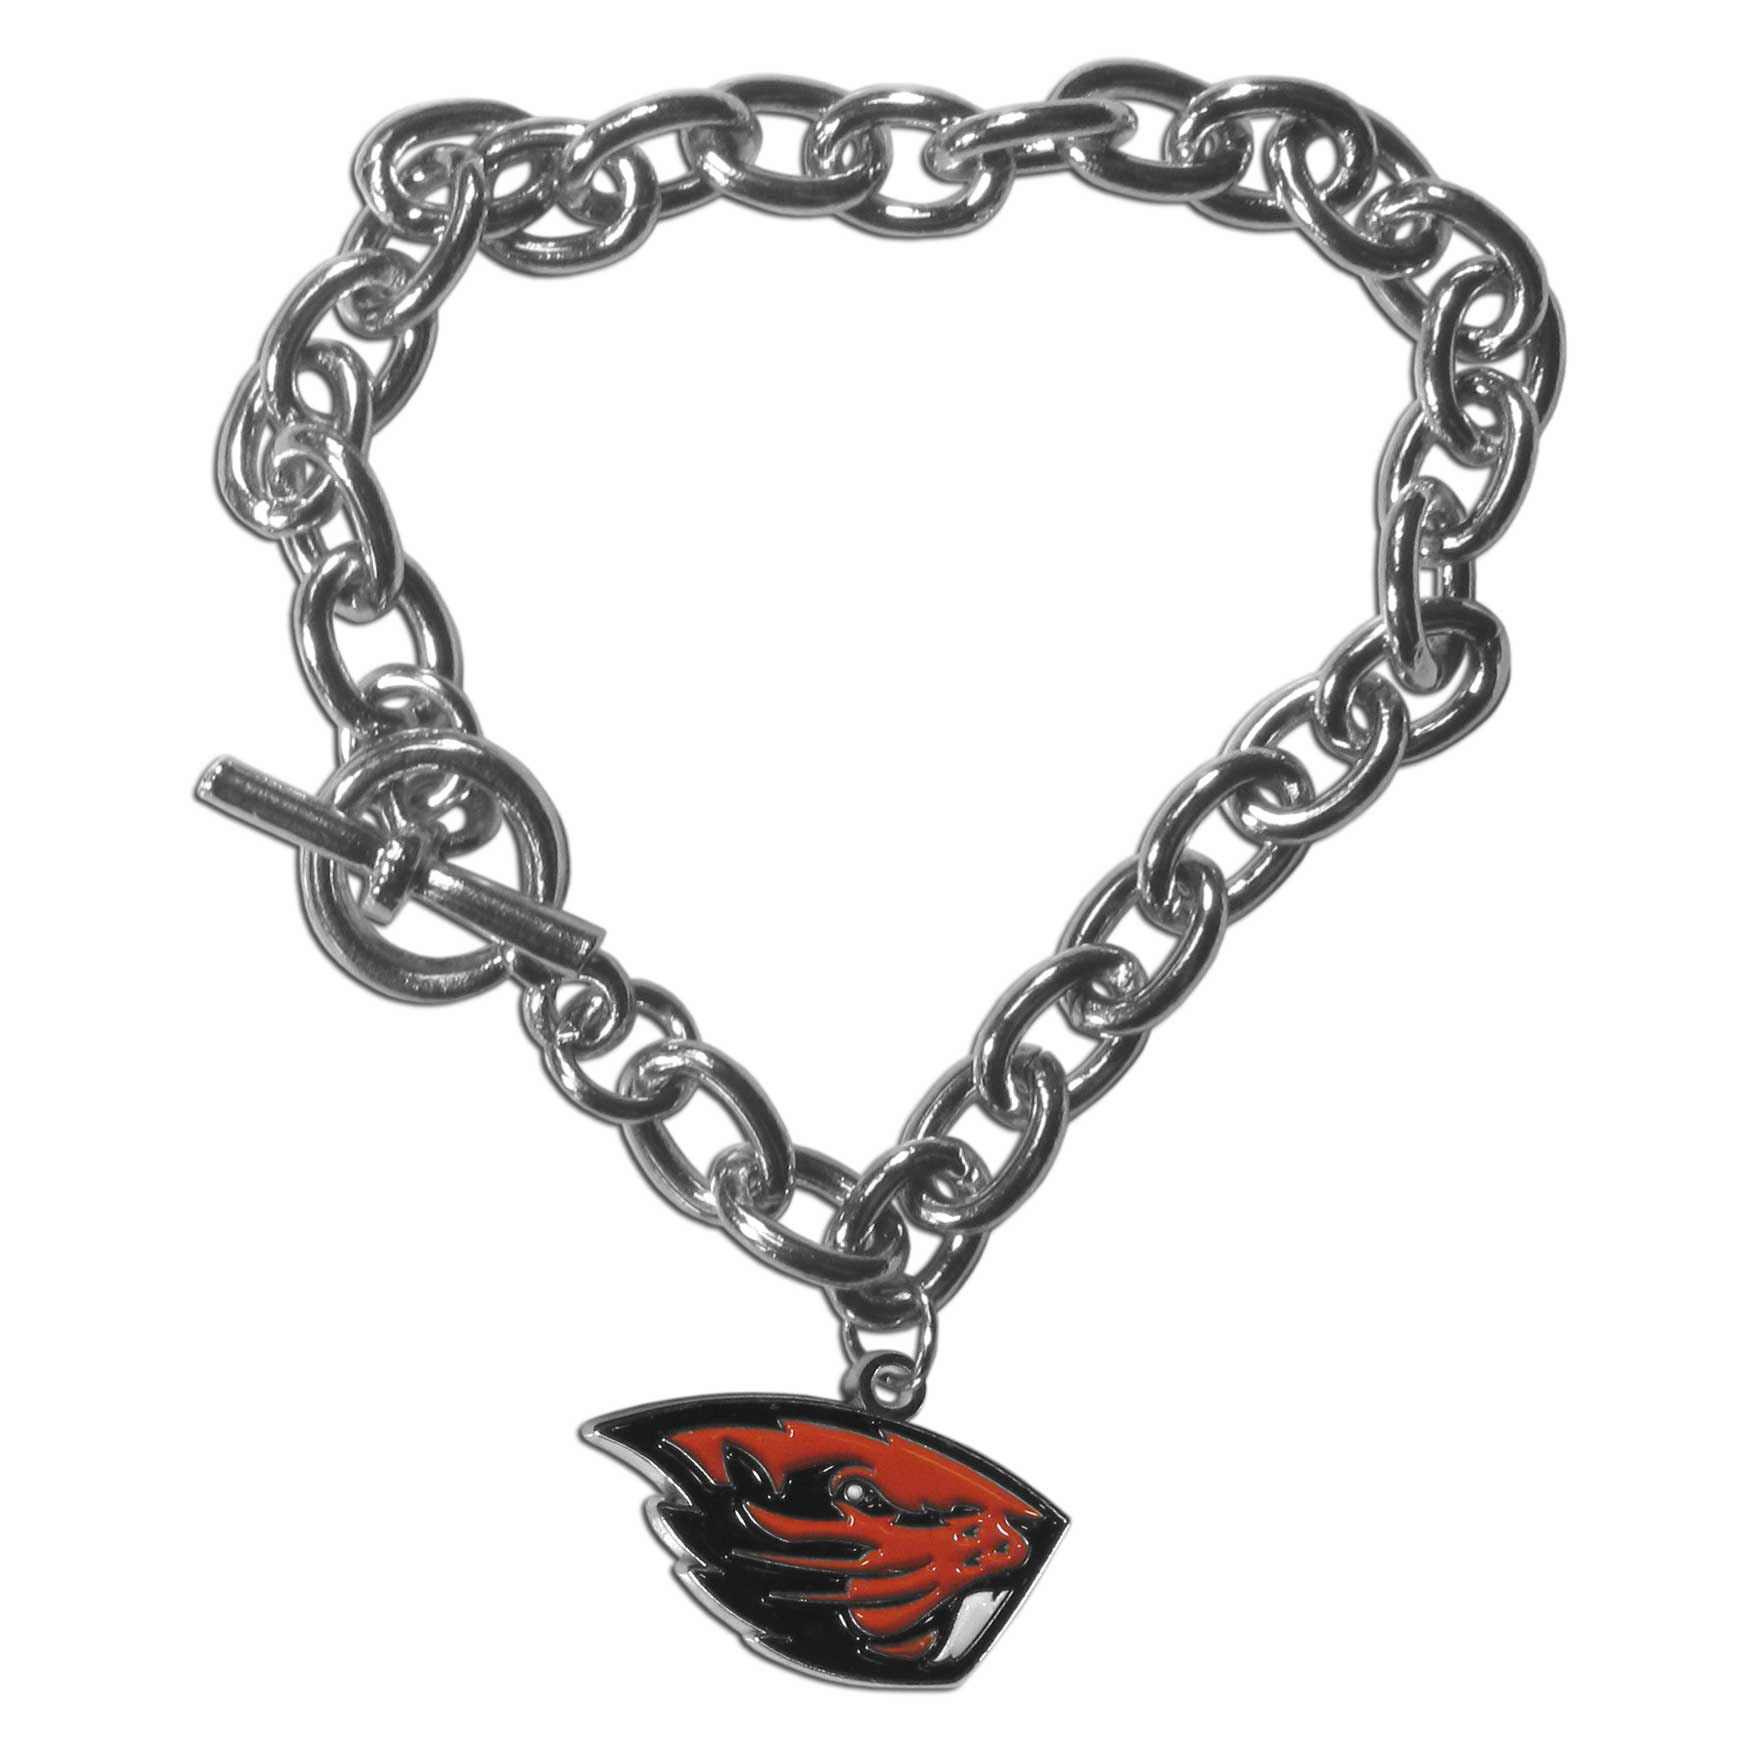 Oregon St. Beavers Charm Chain Bracelet - Our classic single charm bracelet is a great way to show off your team pride! The 7.5 inch large link chain features a high polish Oregon St. Beavers charm and features a toggle clasp which makes it super easy to take on and off.